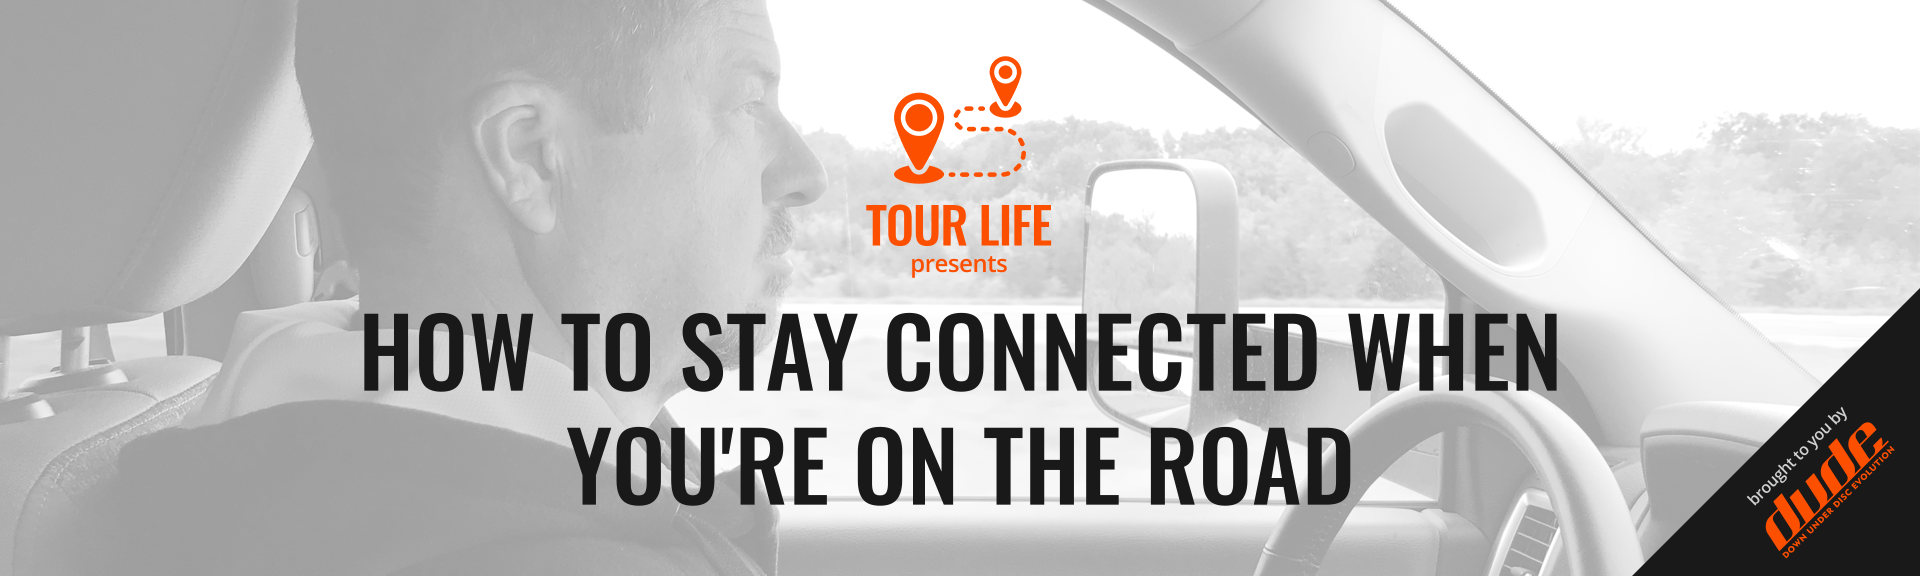 Dude Clothing Tour Life How to stay connected when you're on the road